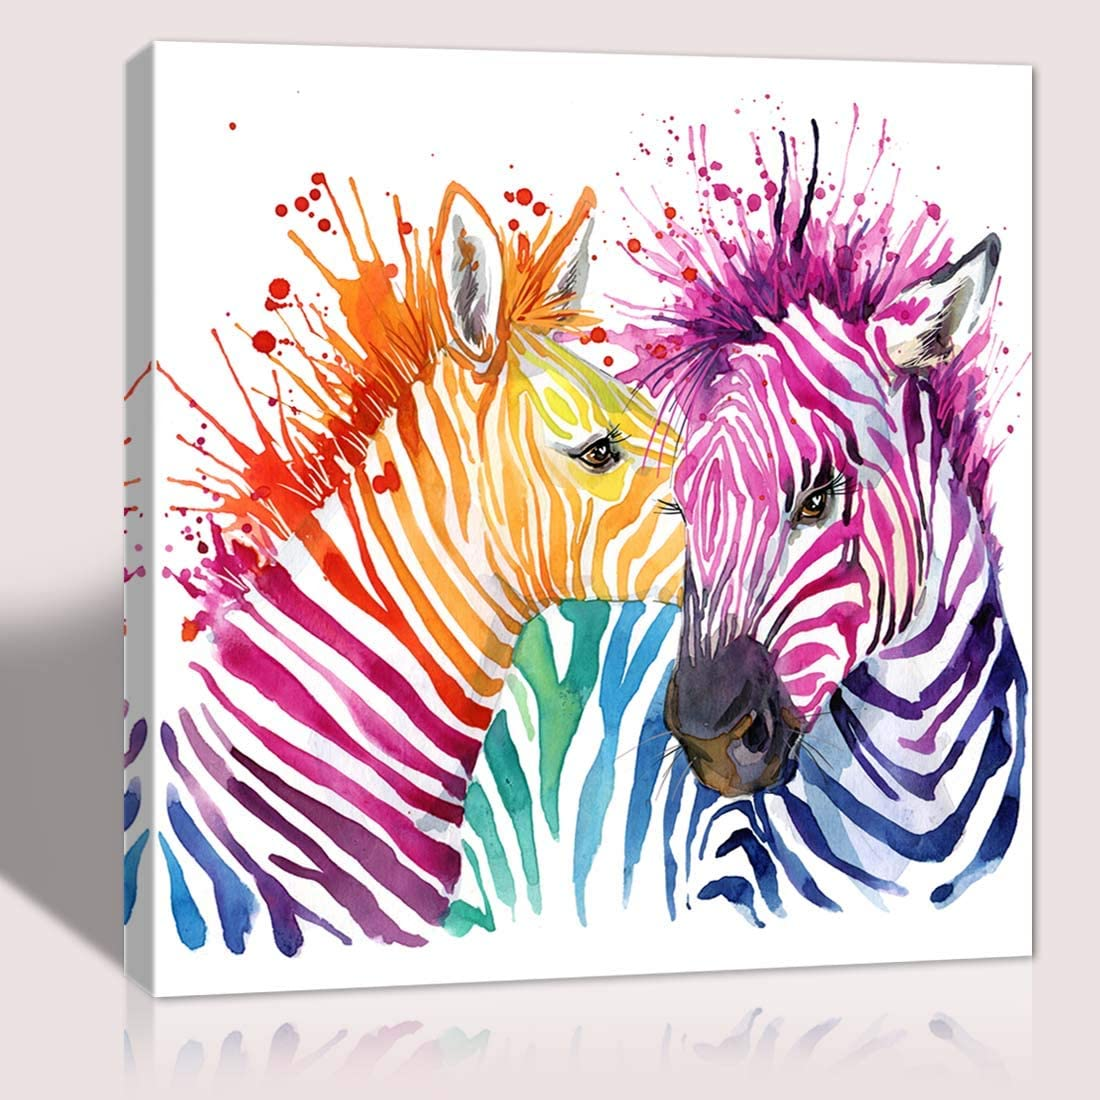 The melody art cut colorful zebra pictures canvas print anime poster wall decoration for home bedroom girl room nursery room framed wall art 16x16 in 1 PCS